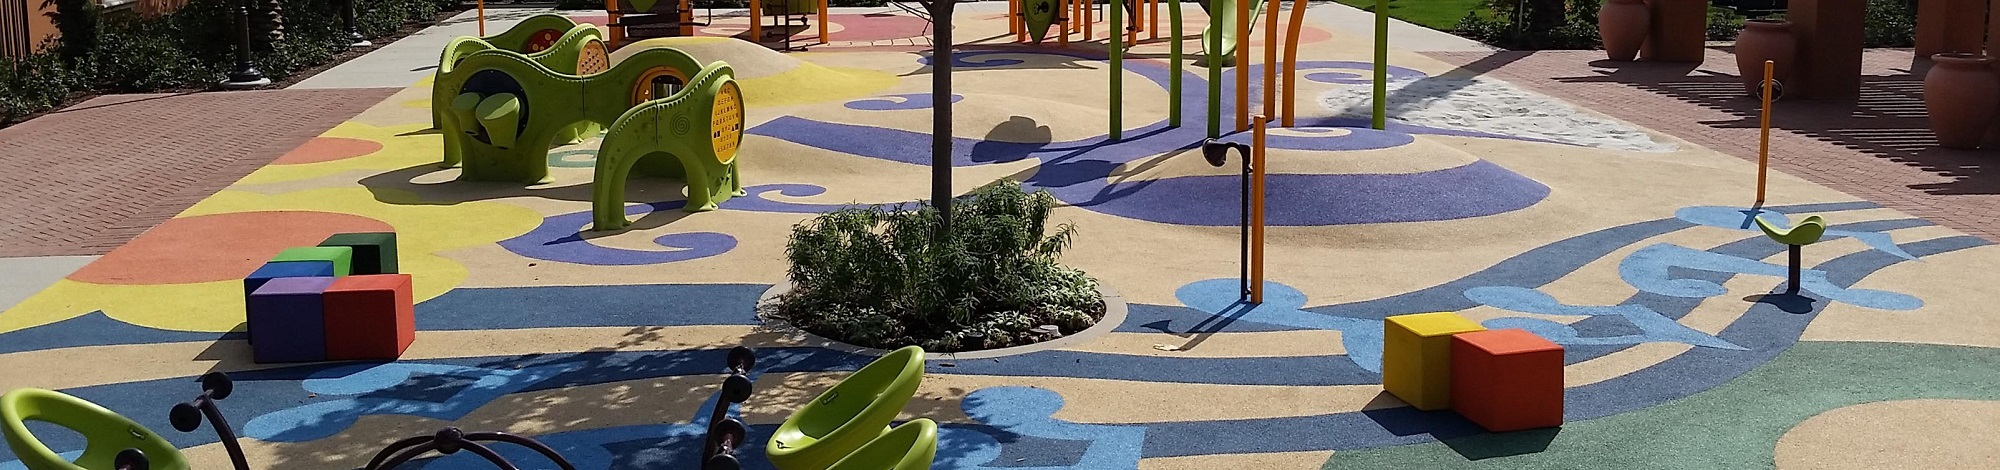 Rubber playground safety surfacing with colorful designs